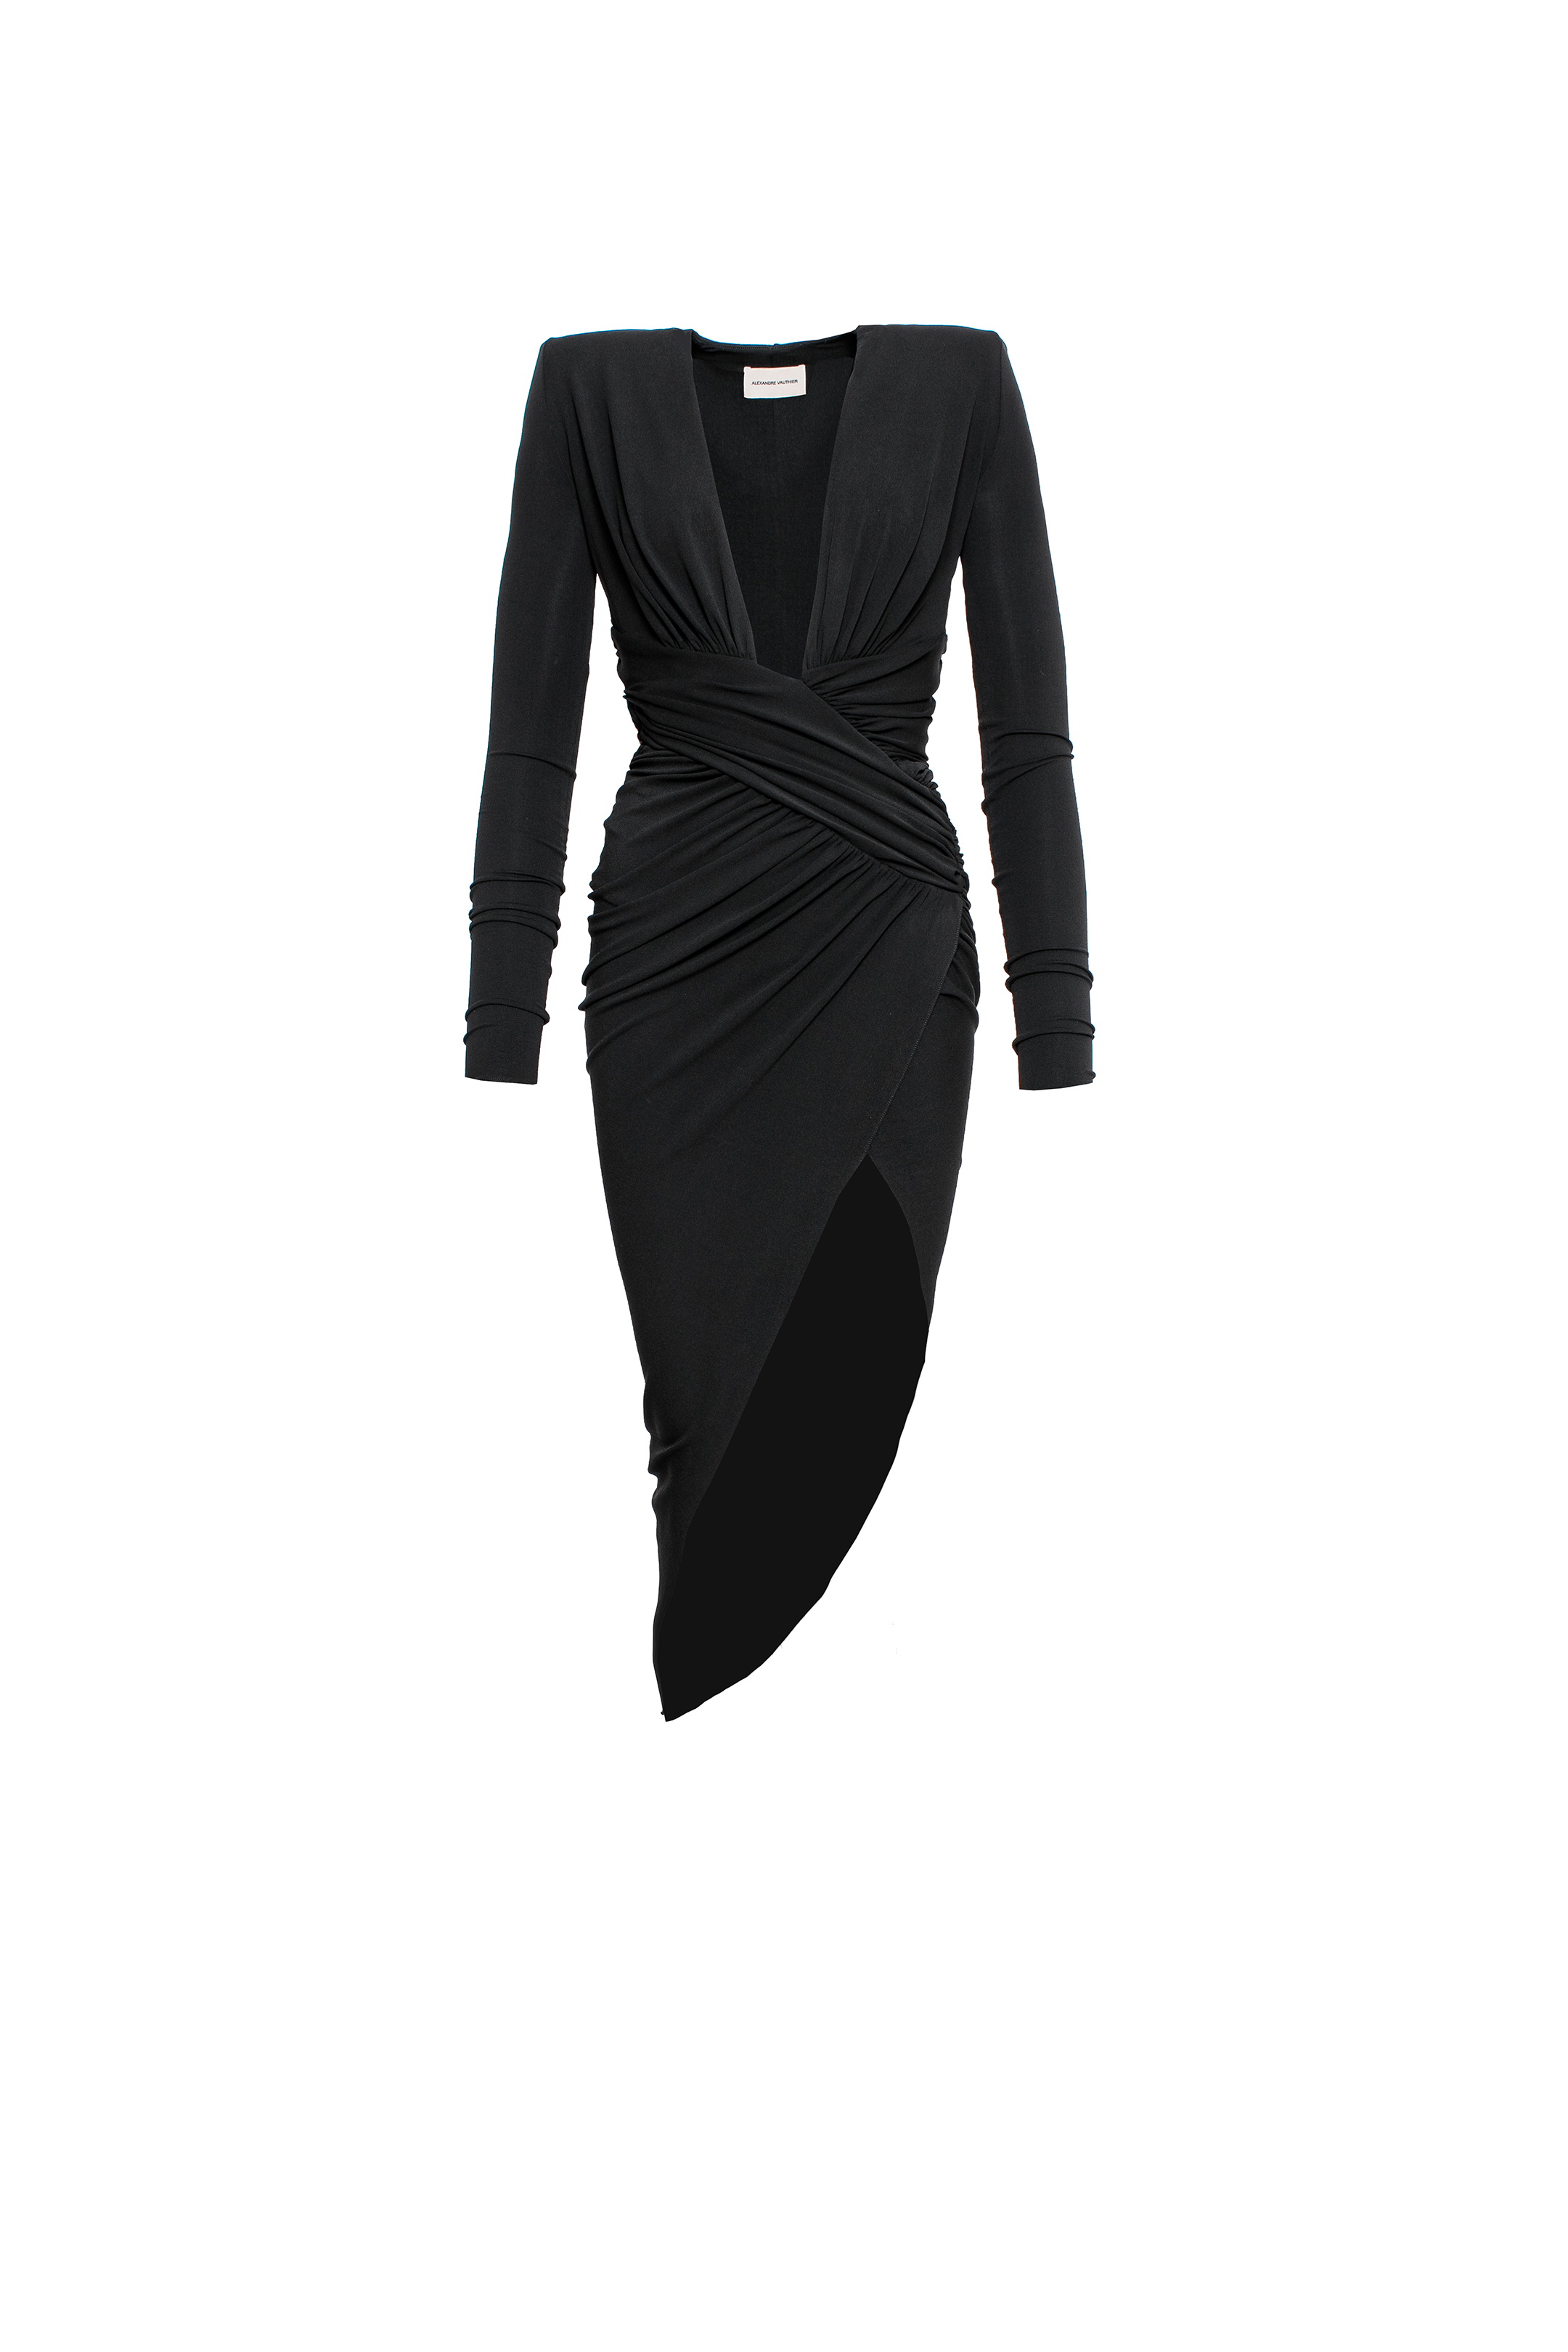 DRESS ALEXANDRE VAUTHIER